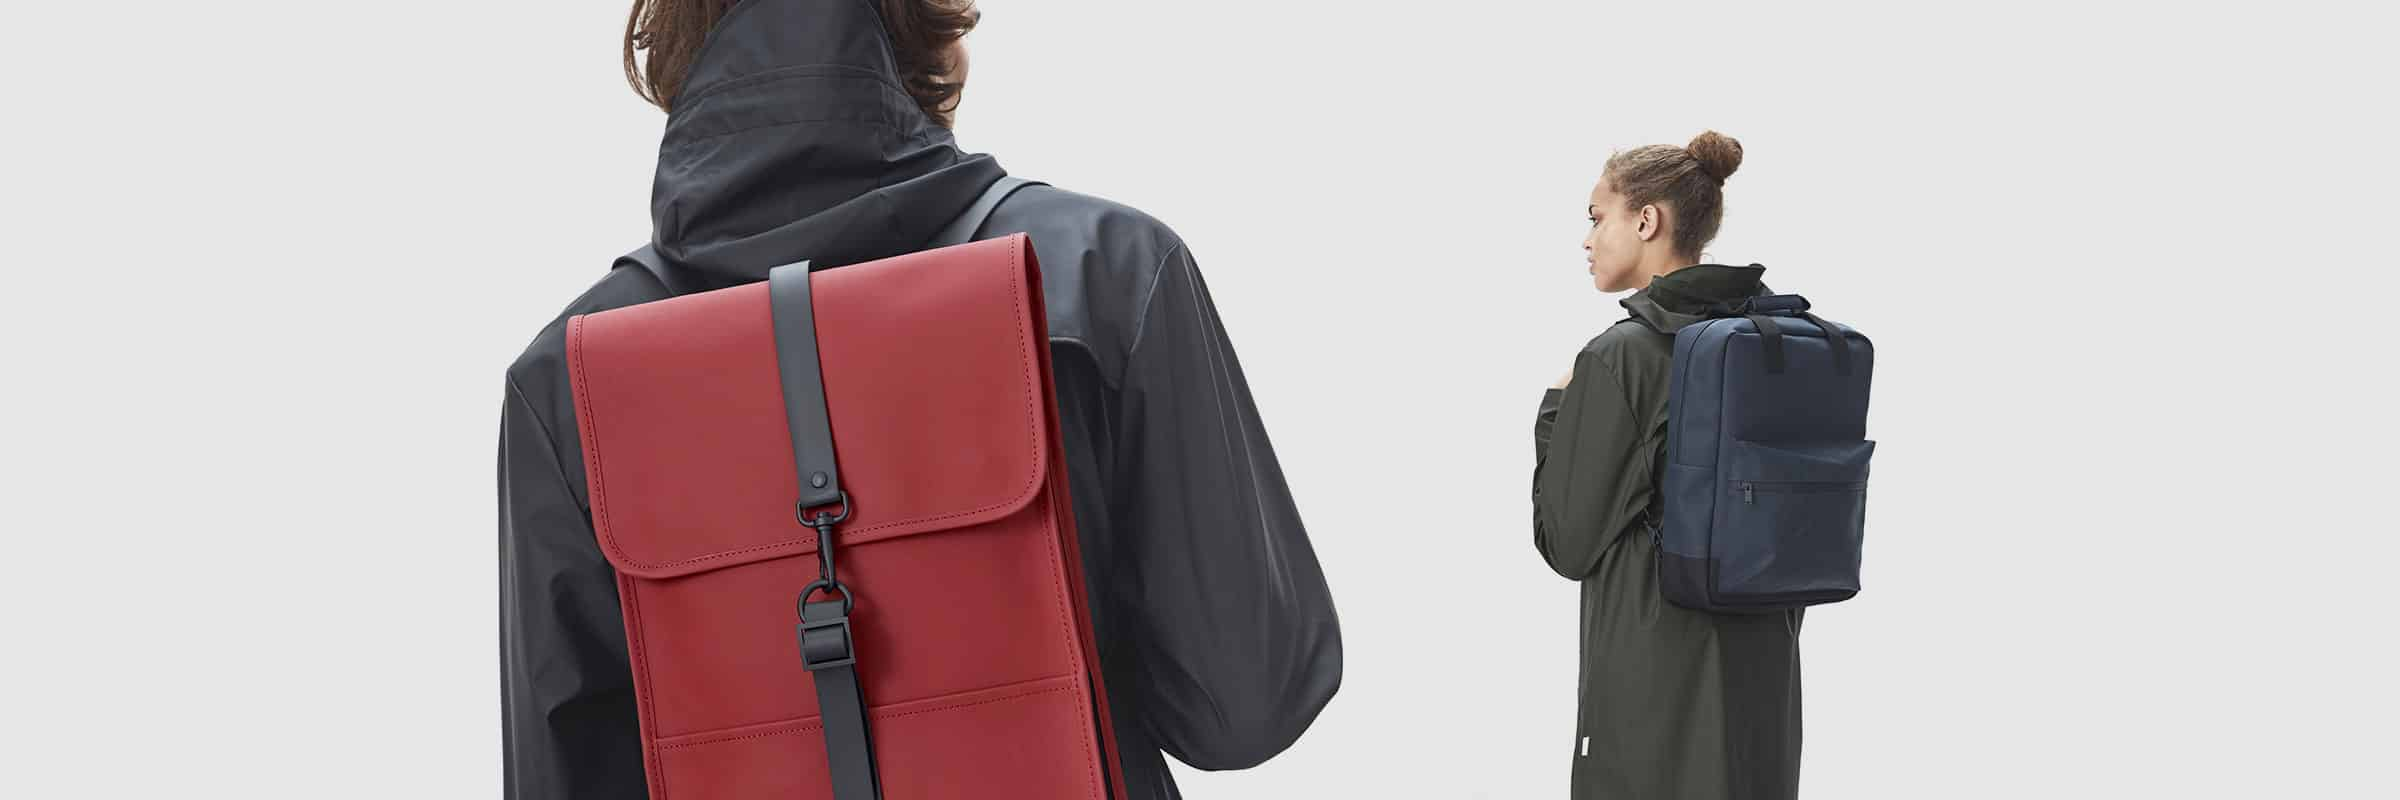 The Top Urban Bags & Backpacks for Wet Weather Commutes